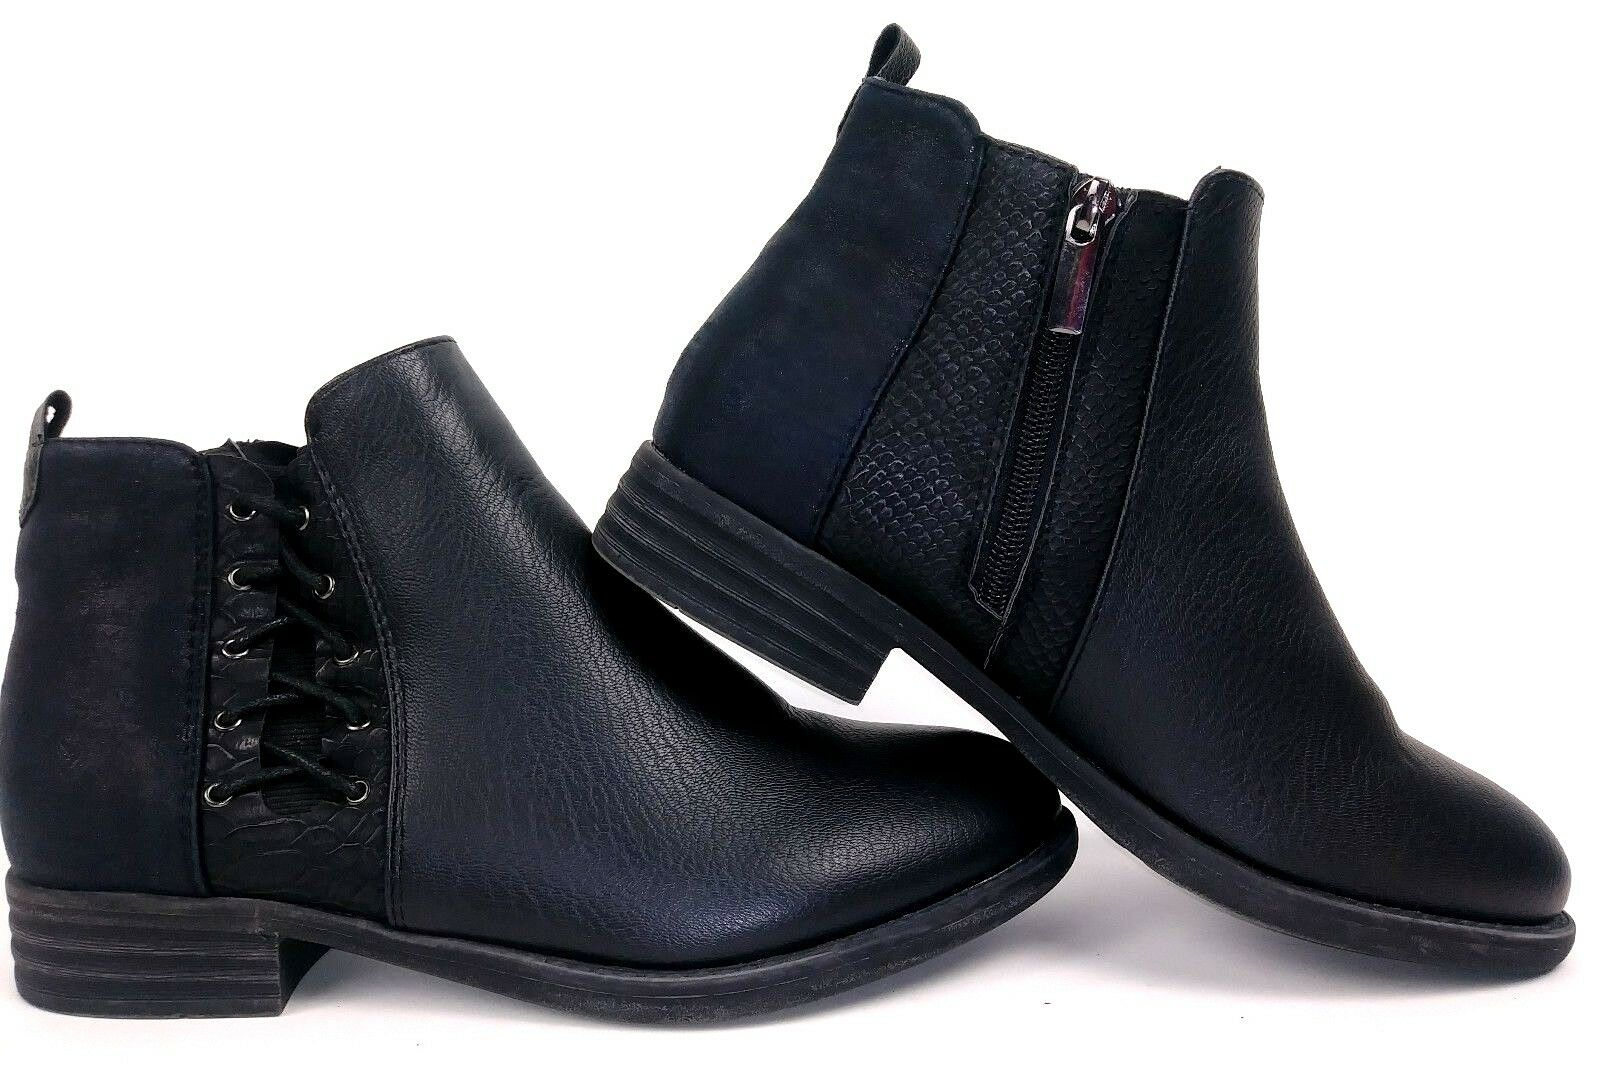 Dept 222 Womens Chatham Ankle Boots Size 7.5 Black Faux Leather Zip Booties